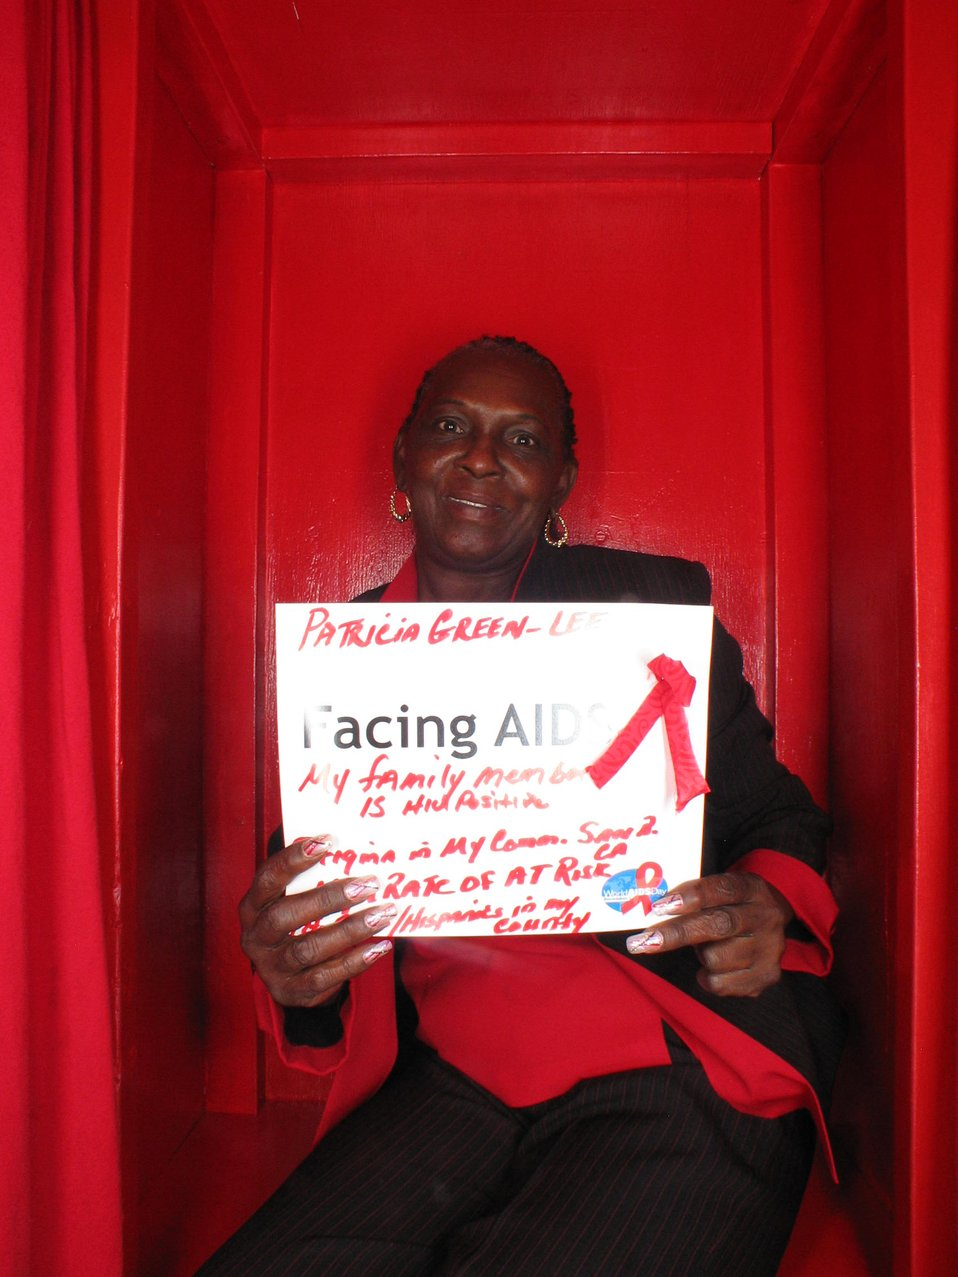 Facing AIDS my family member is HIV positive. Sitgma in my community.